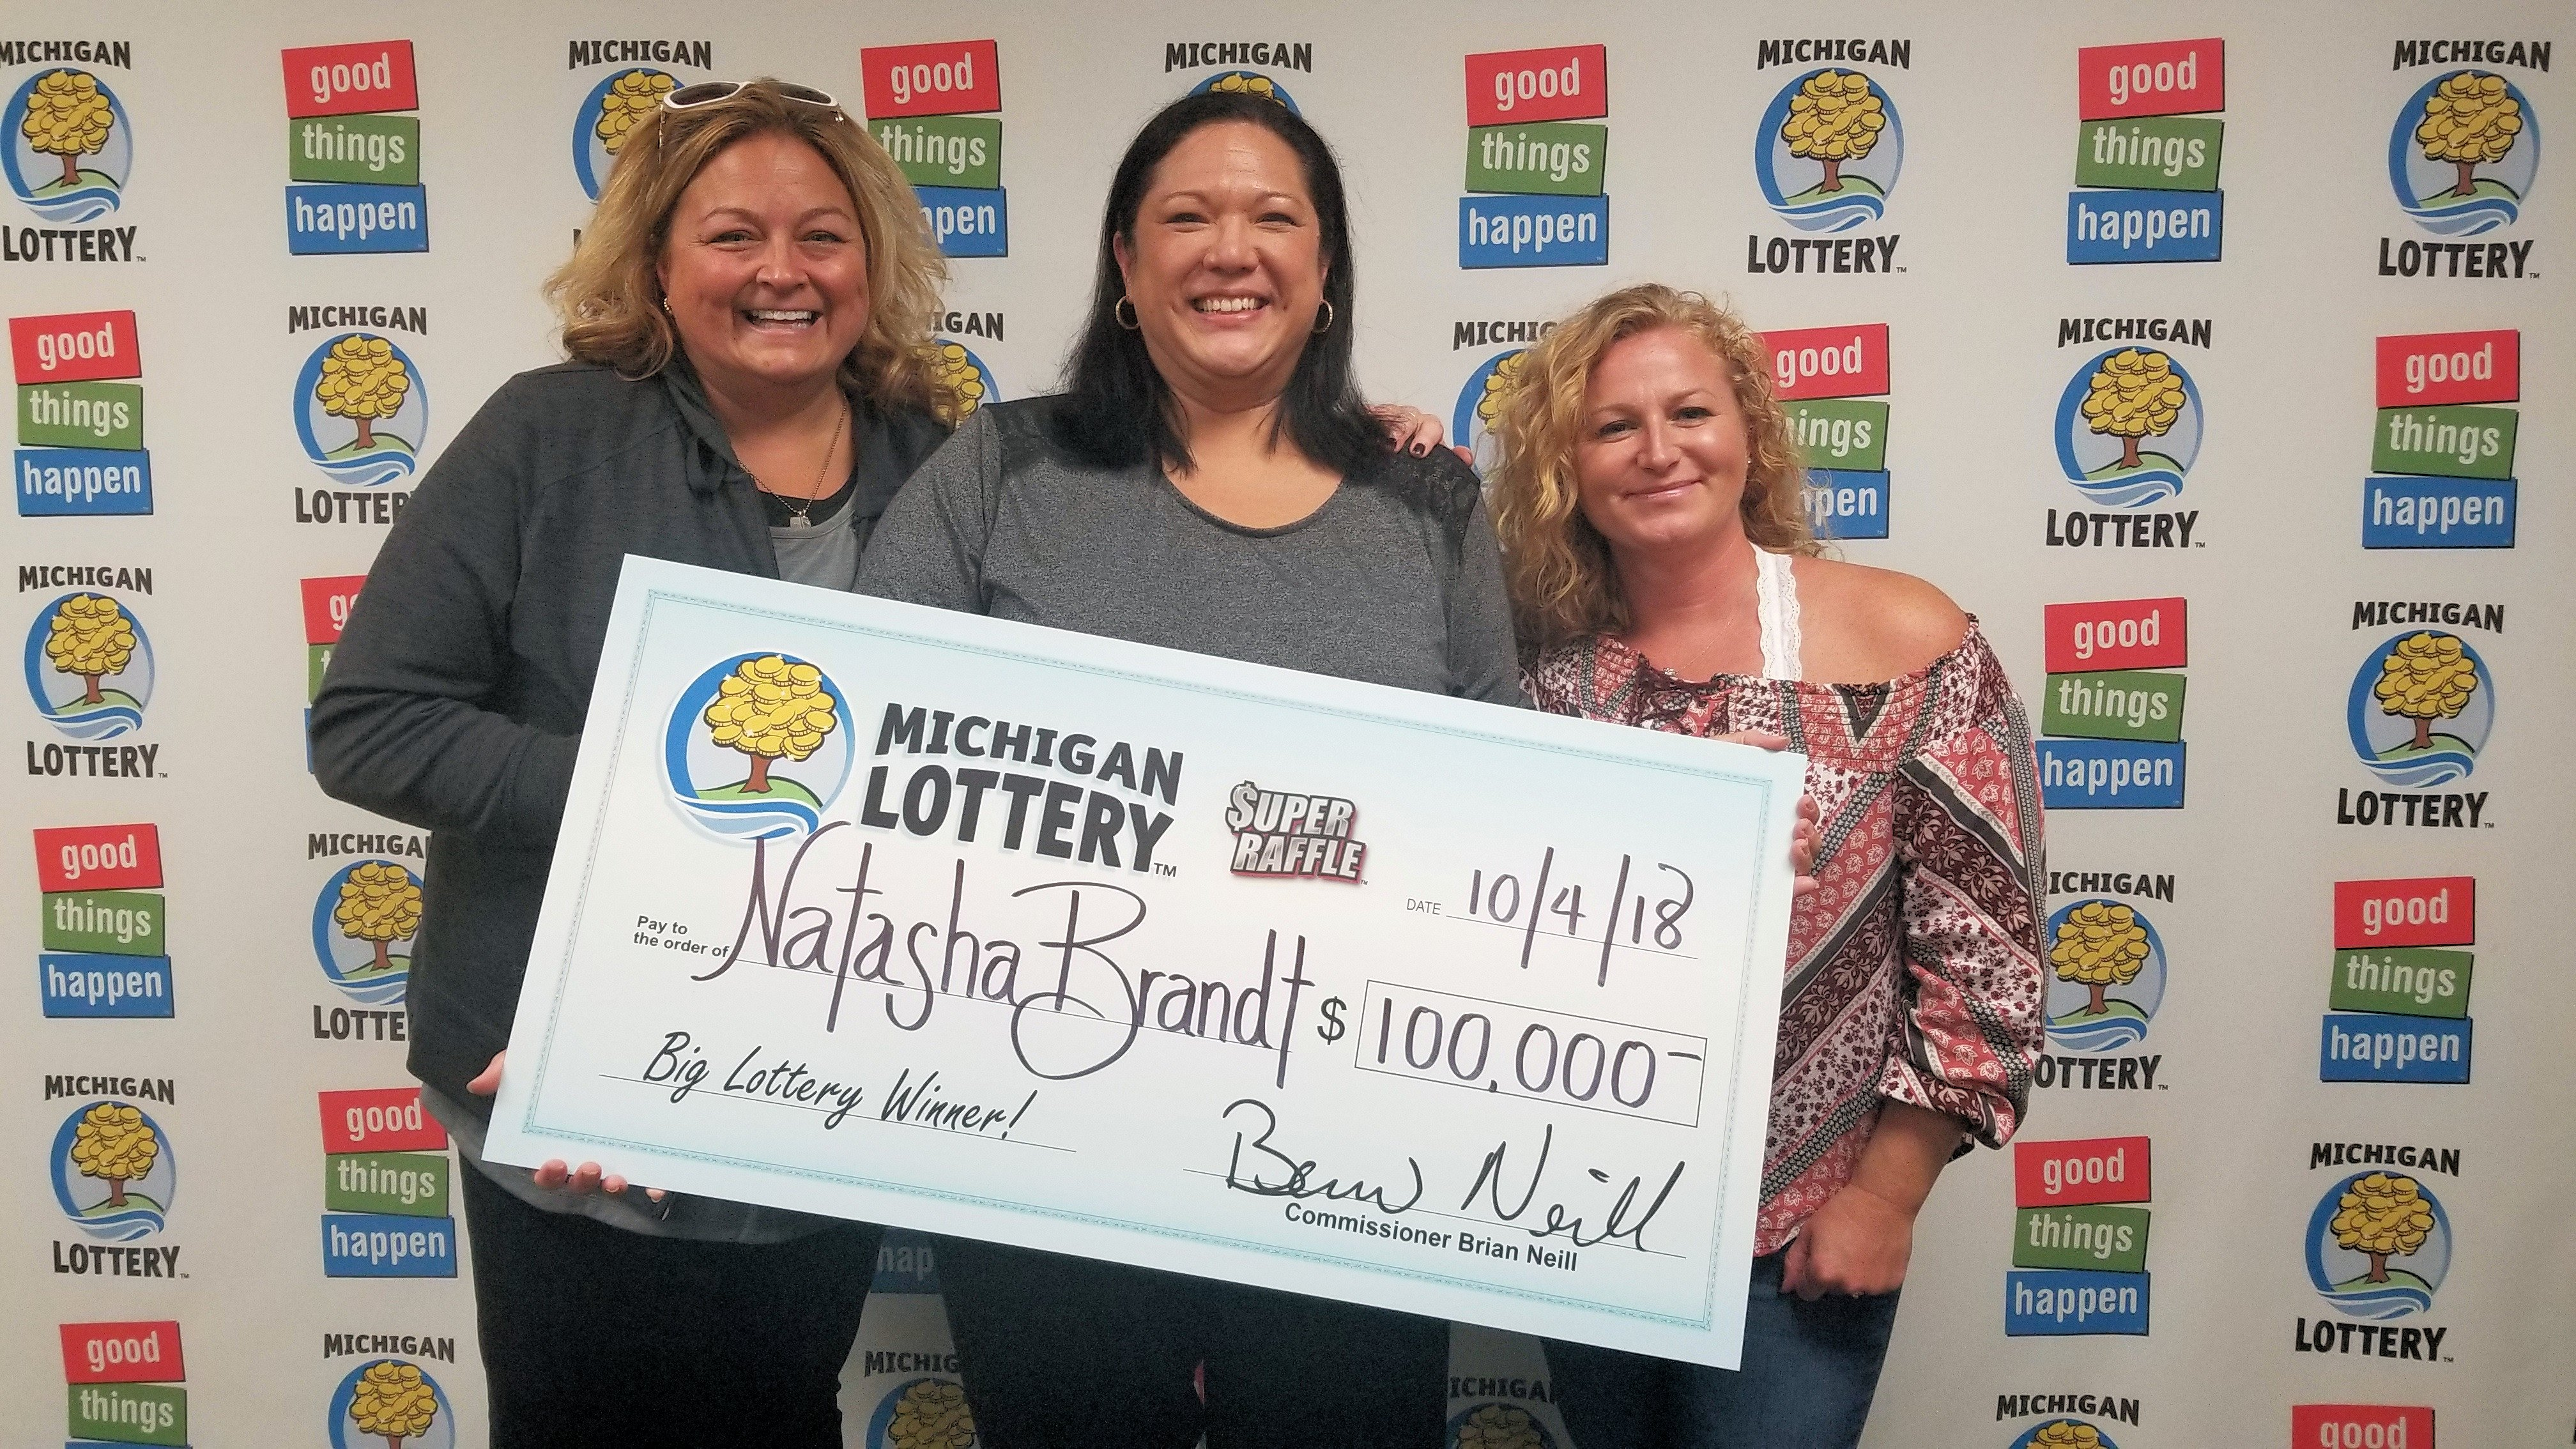 Bay City Woman Wins 100 000 Super Raffle Prize Michigan Lottery Connect 913 washington ave, бэй сити, mi 48708, usa. bay city woman wins 100 000 super